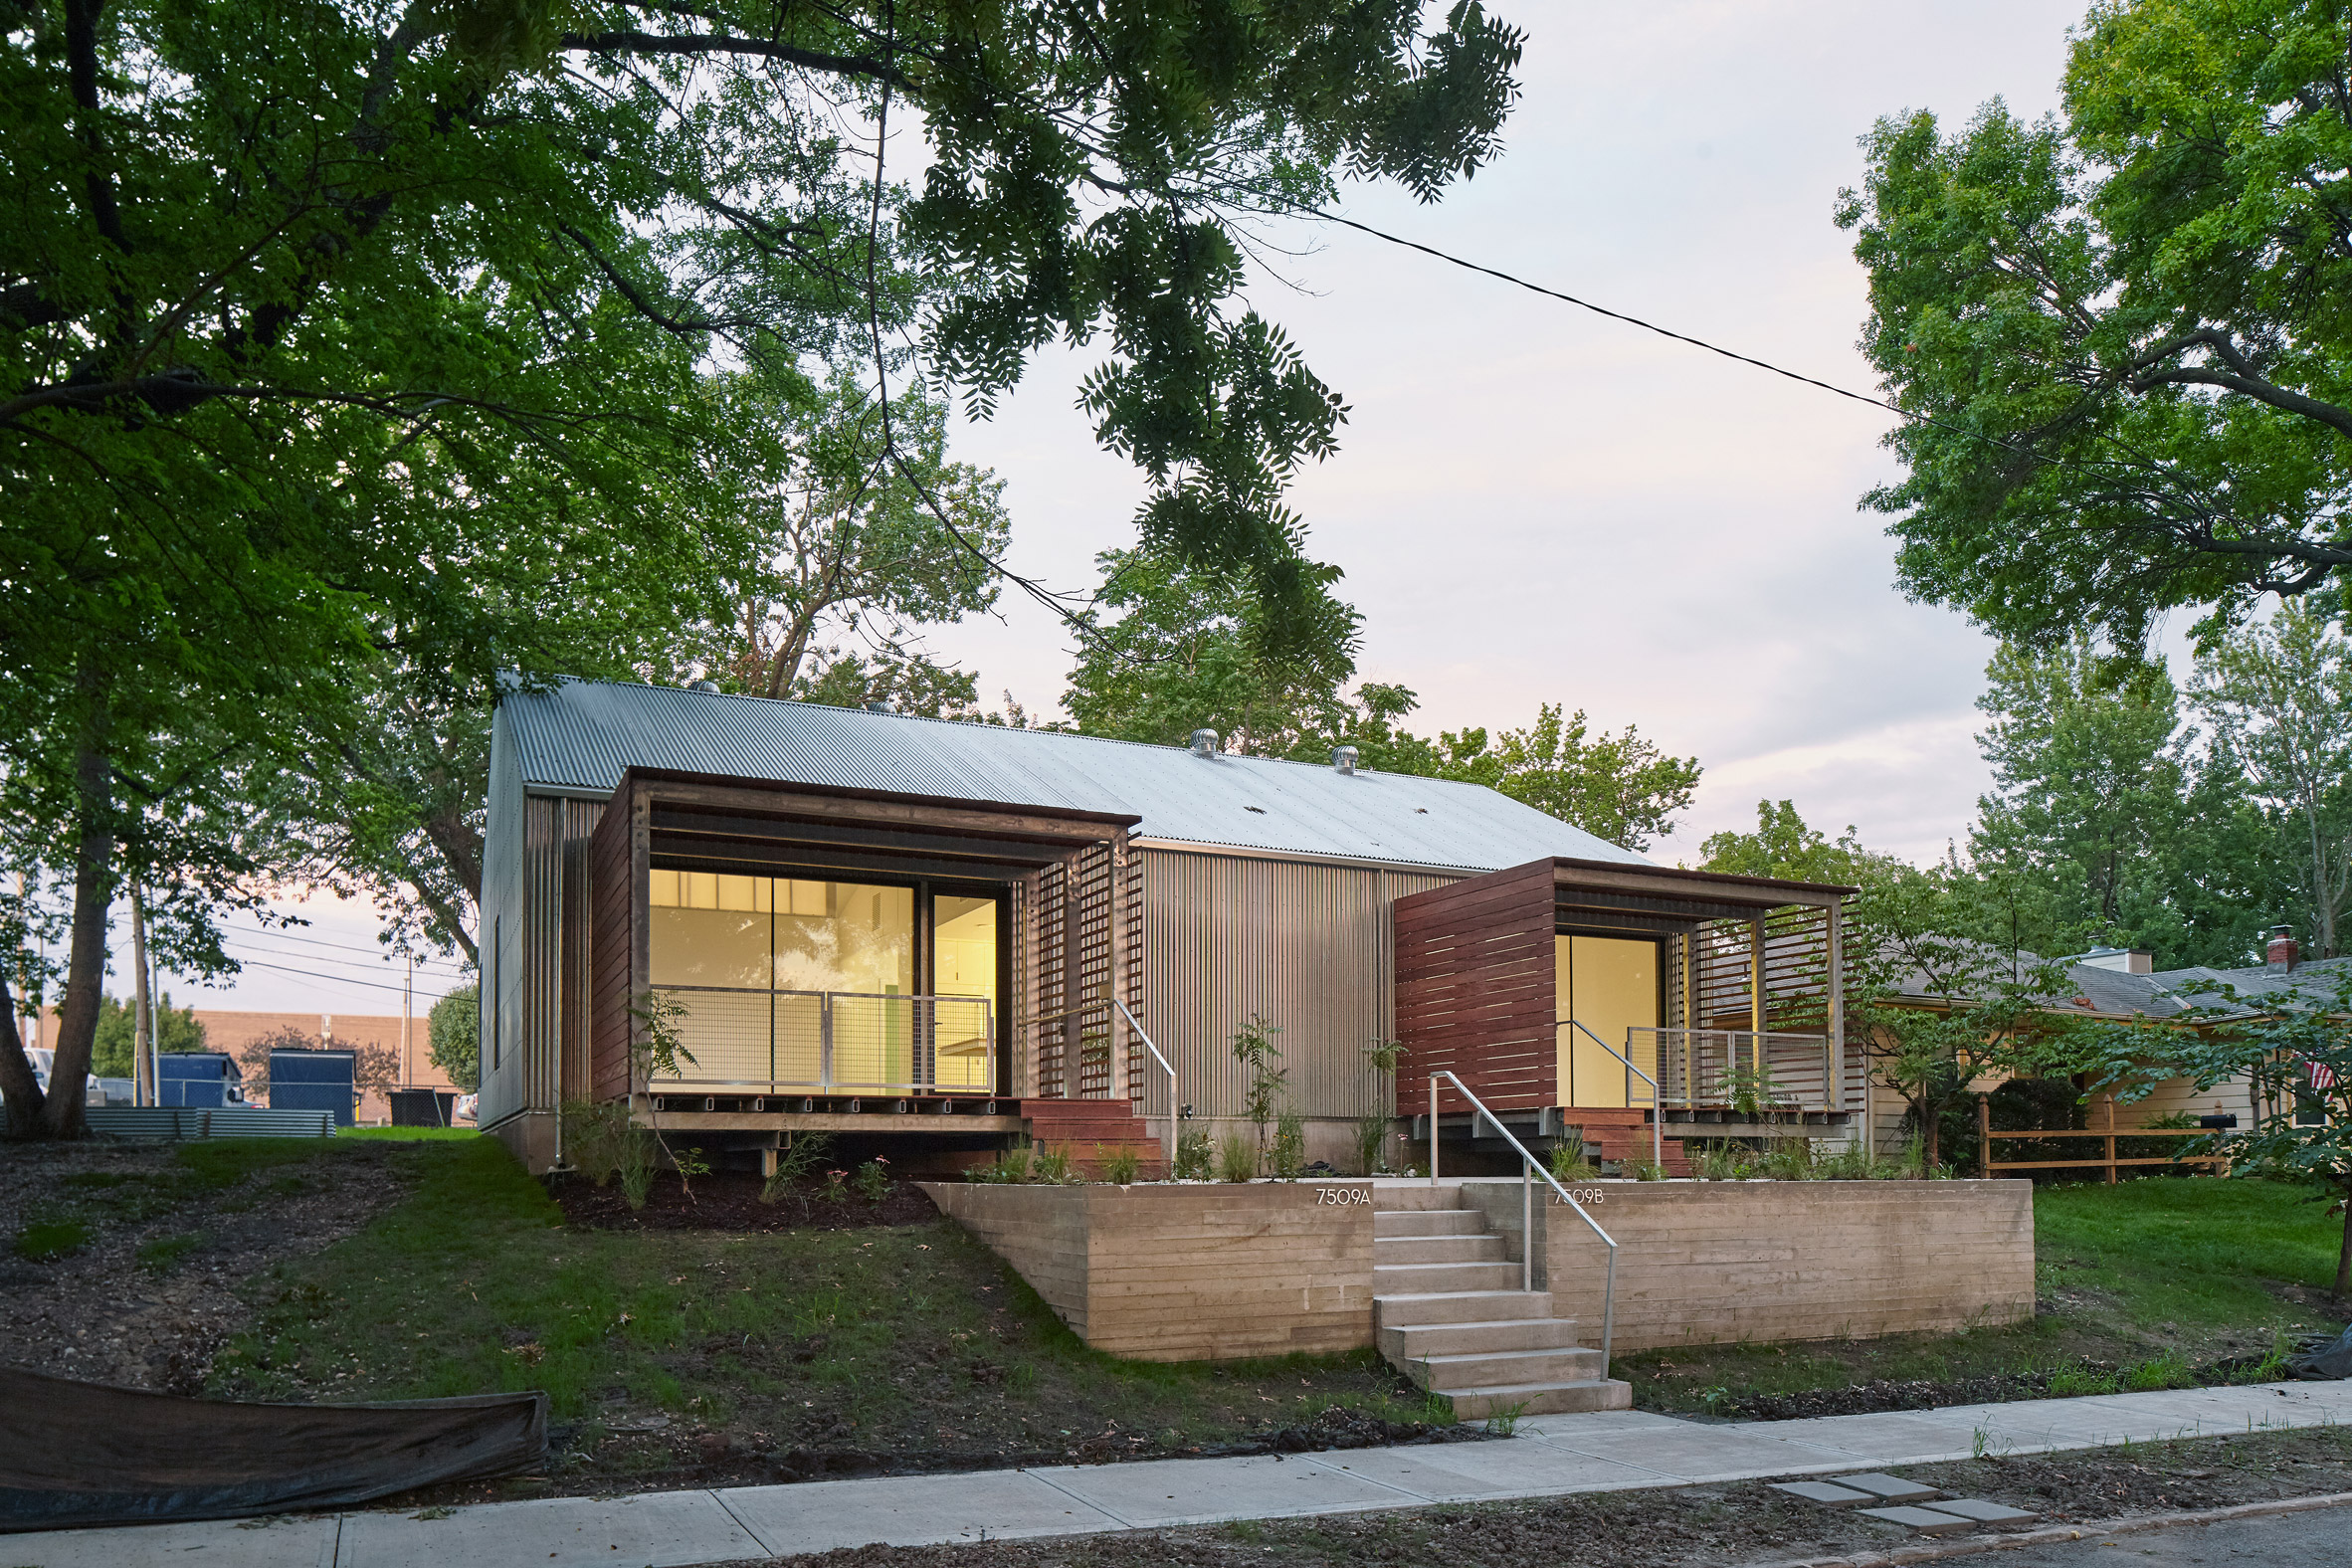 Kansas architecture students wrap affordable home in corrugated metal